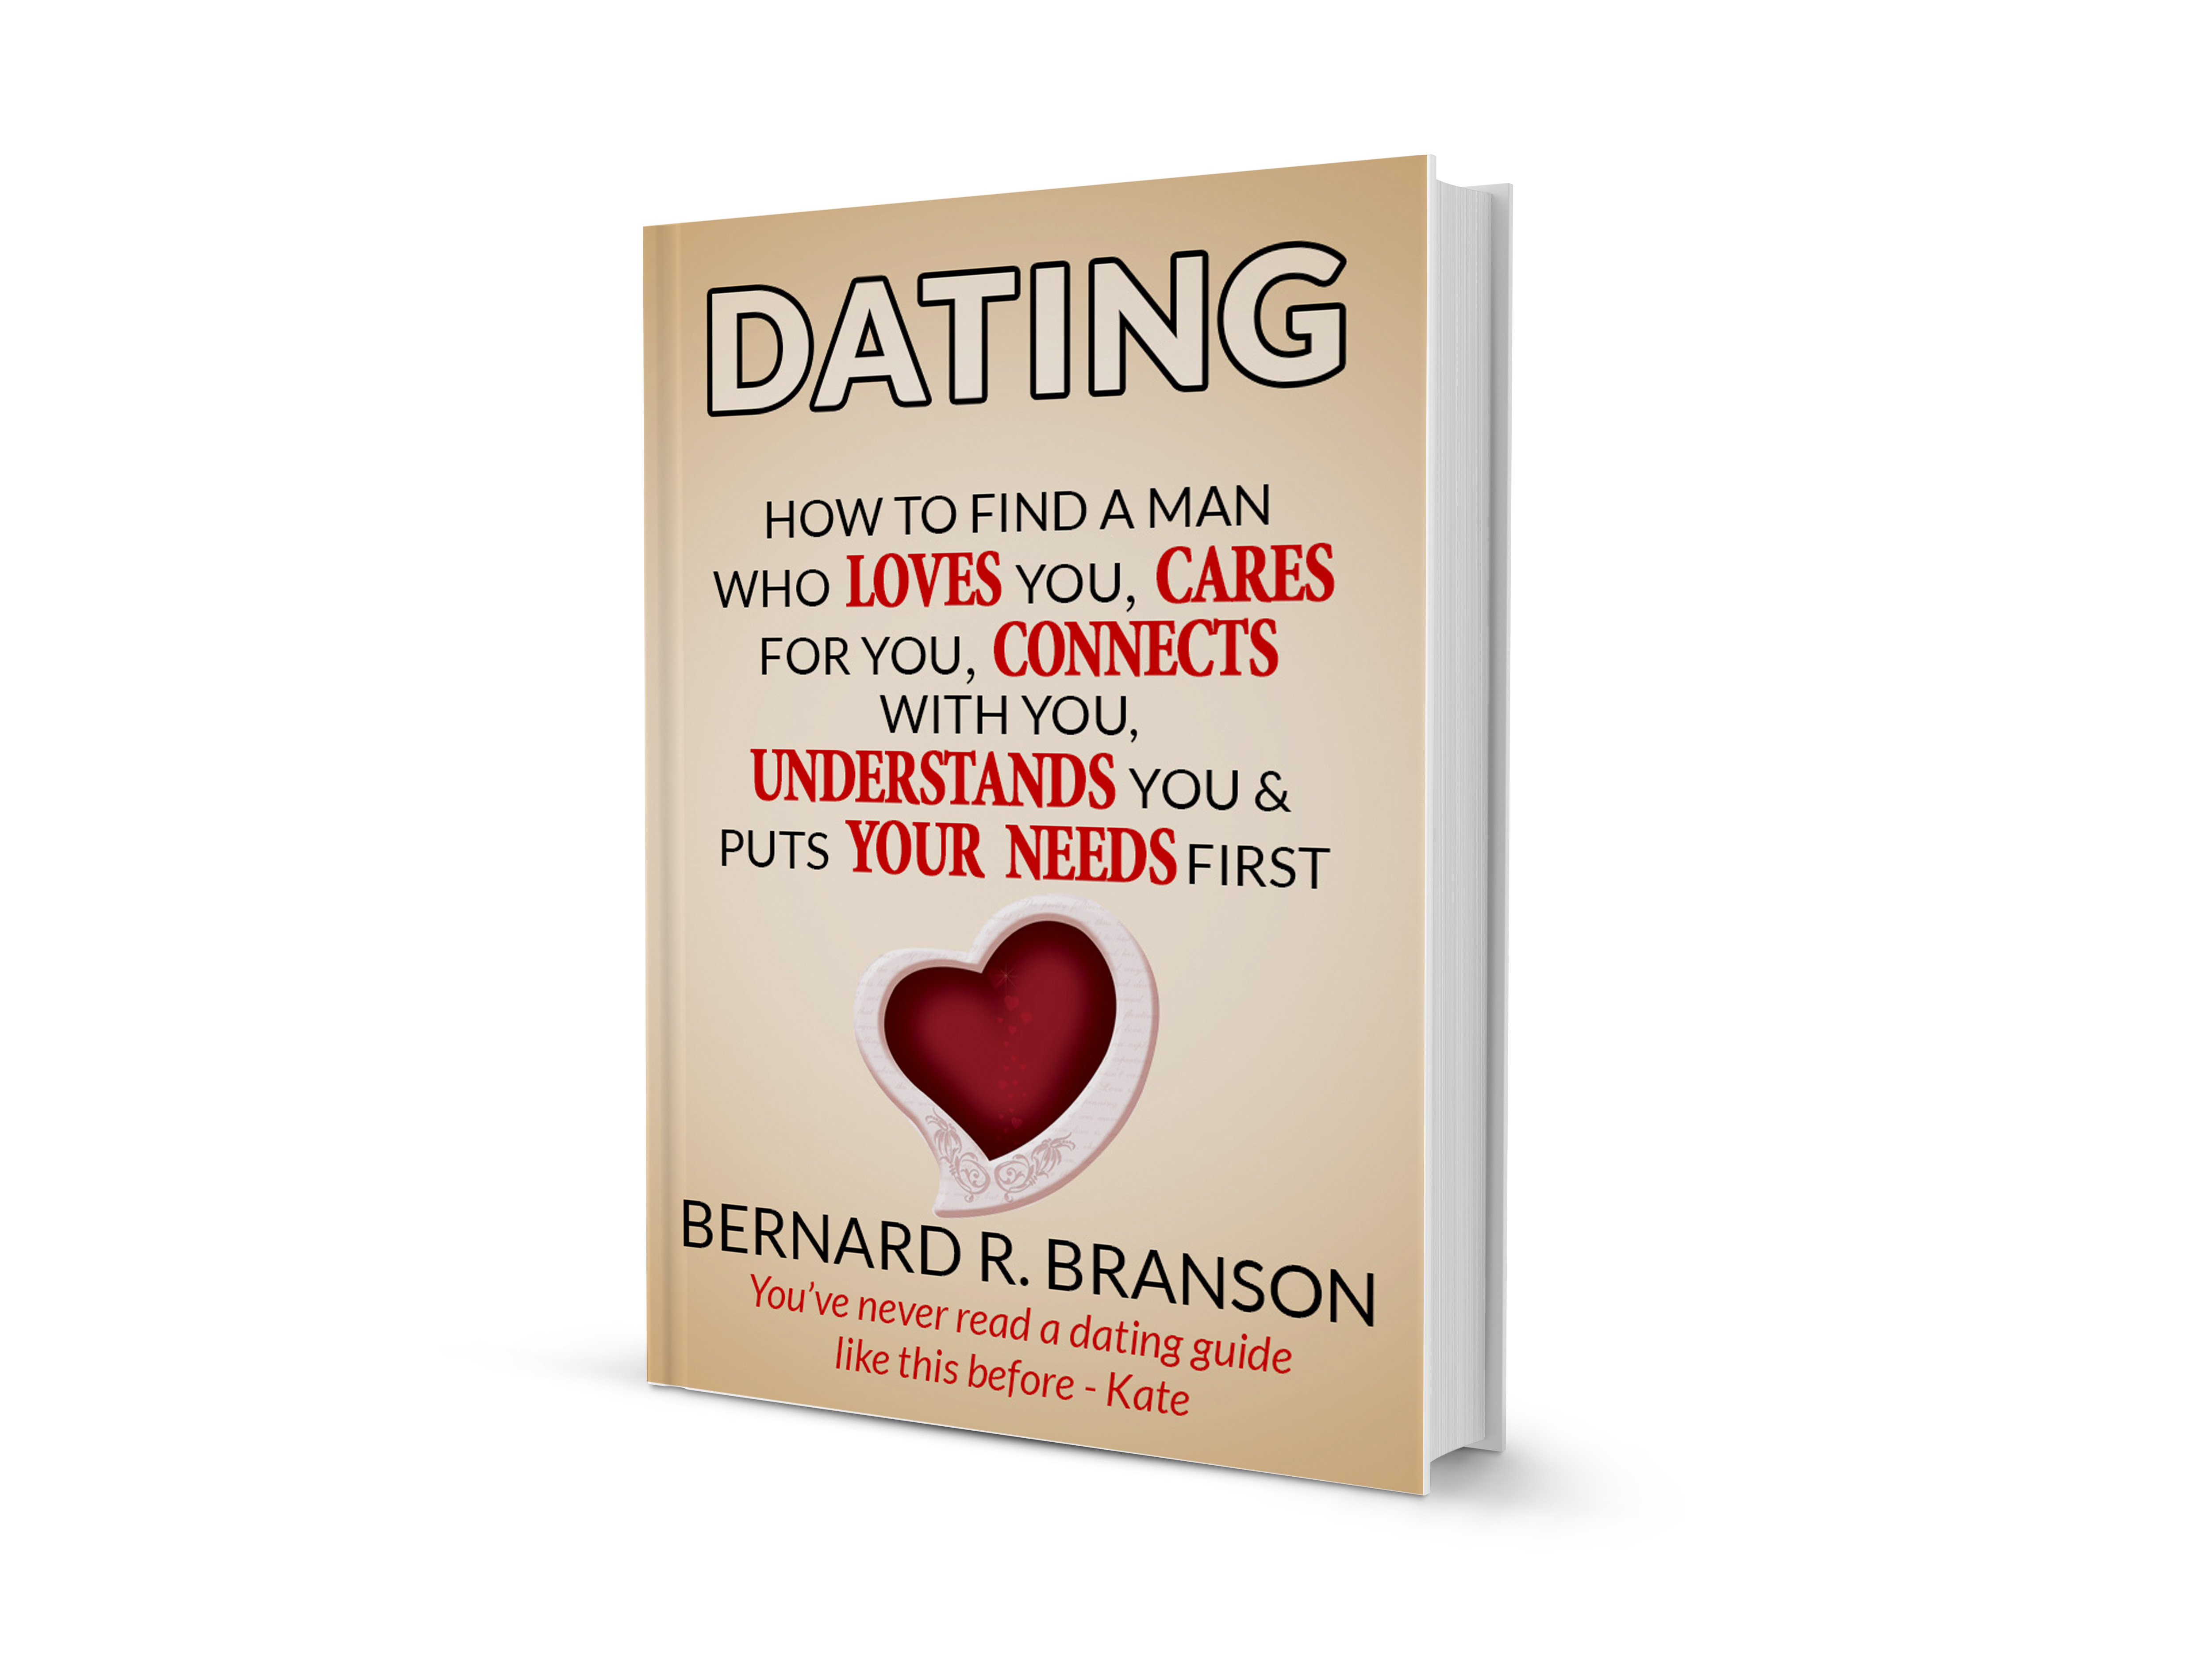 Dating: How to Find a Man Who Loves You, Cares For You, Connects With You, Understands You & Put Your Needs First